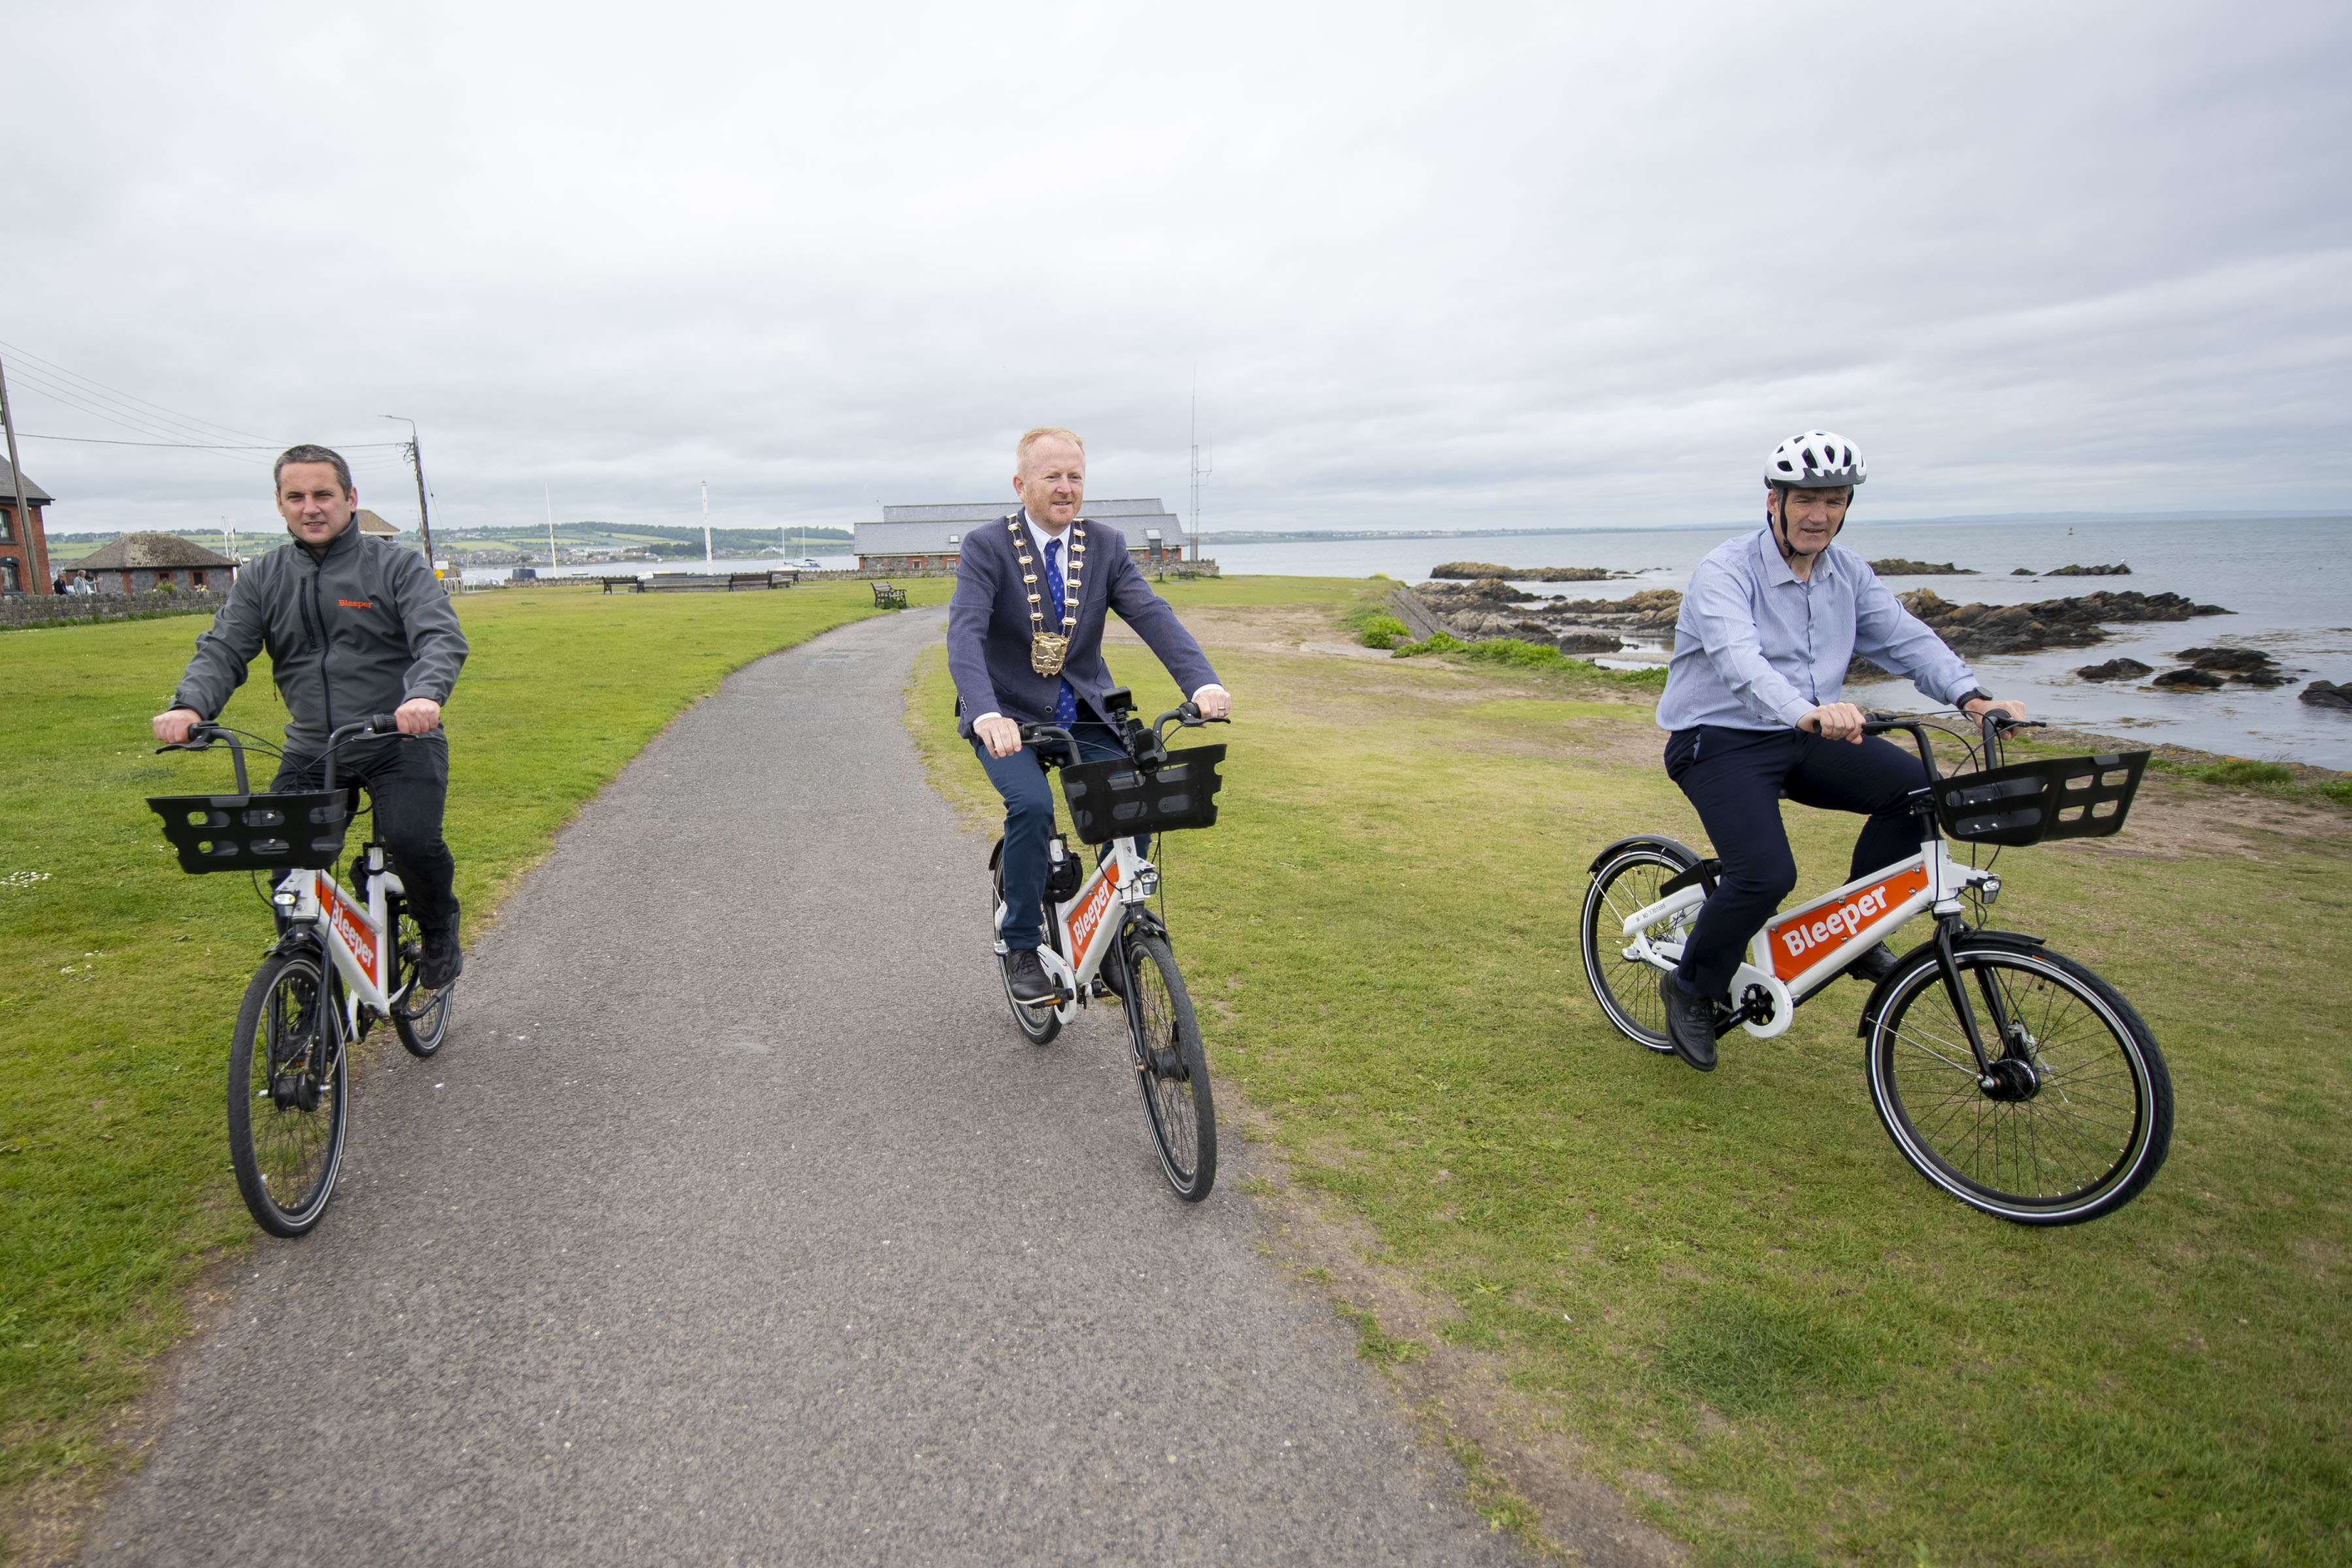 Bleeper expansion into North Fingal with Fingal Mayor Cllr David Healy and David Storey, Director of Services for Environment, Climate Action and Active Travel at Fingal County Council